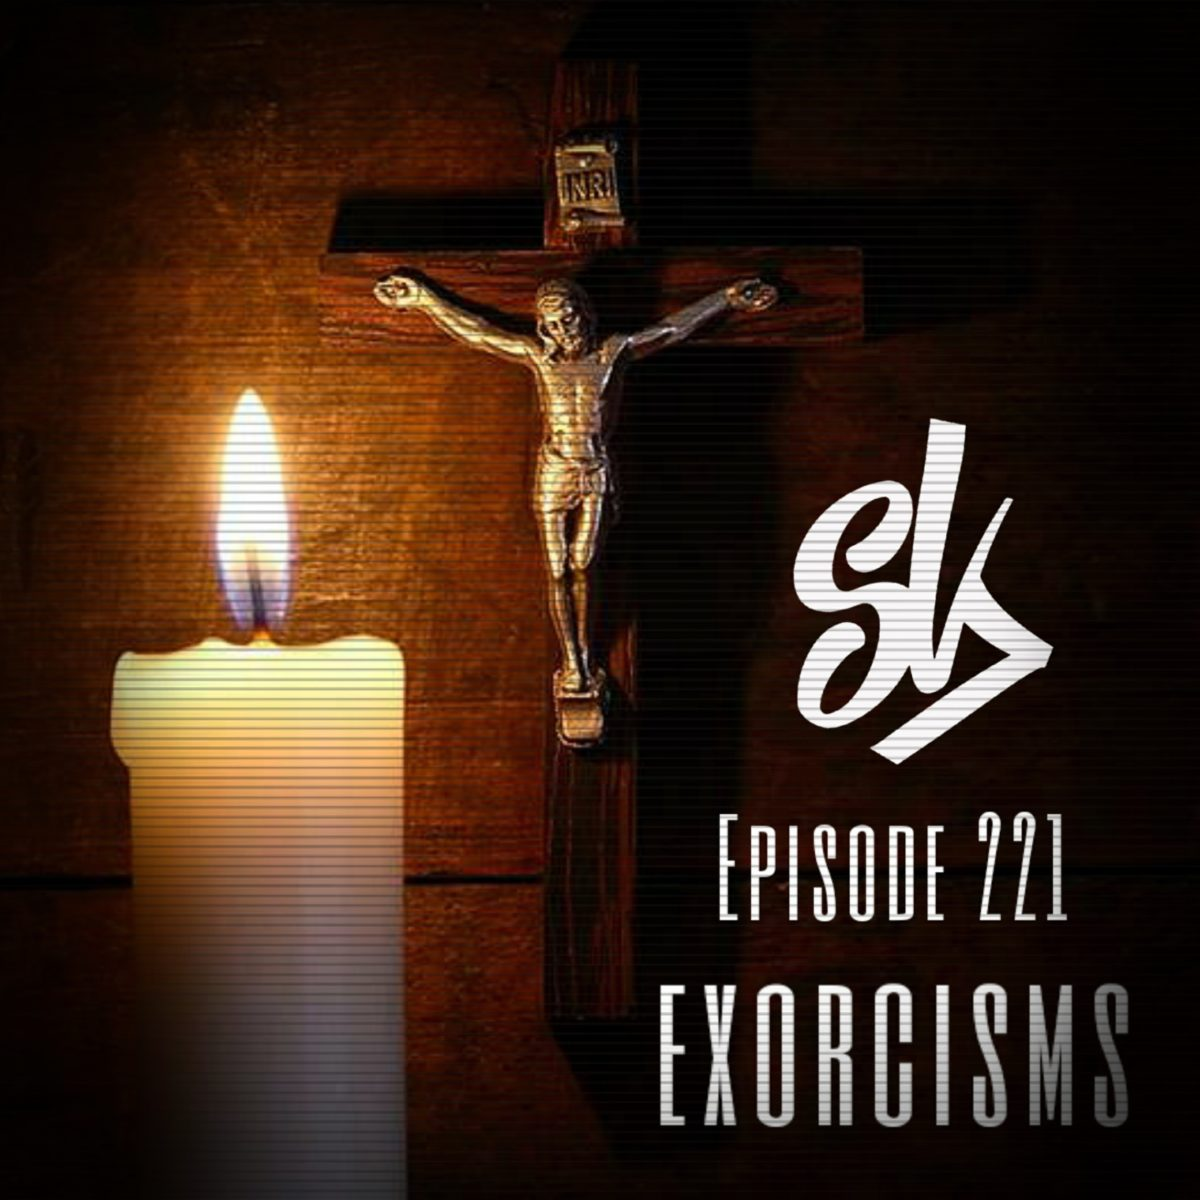 sofa king podcast lounger with storage episode 221 exorcism demons or delusion